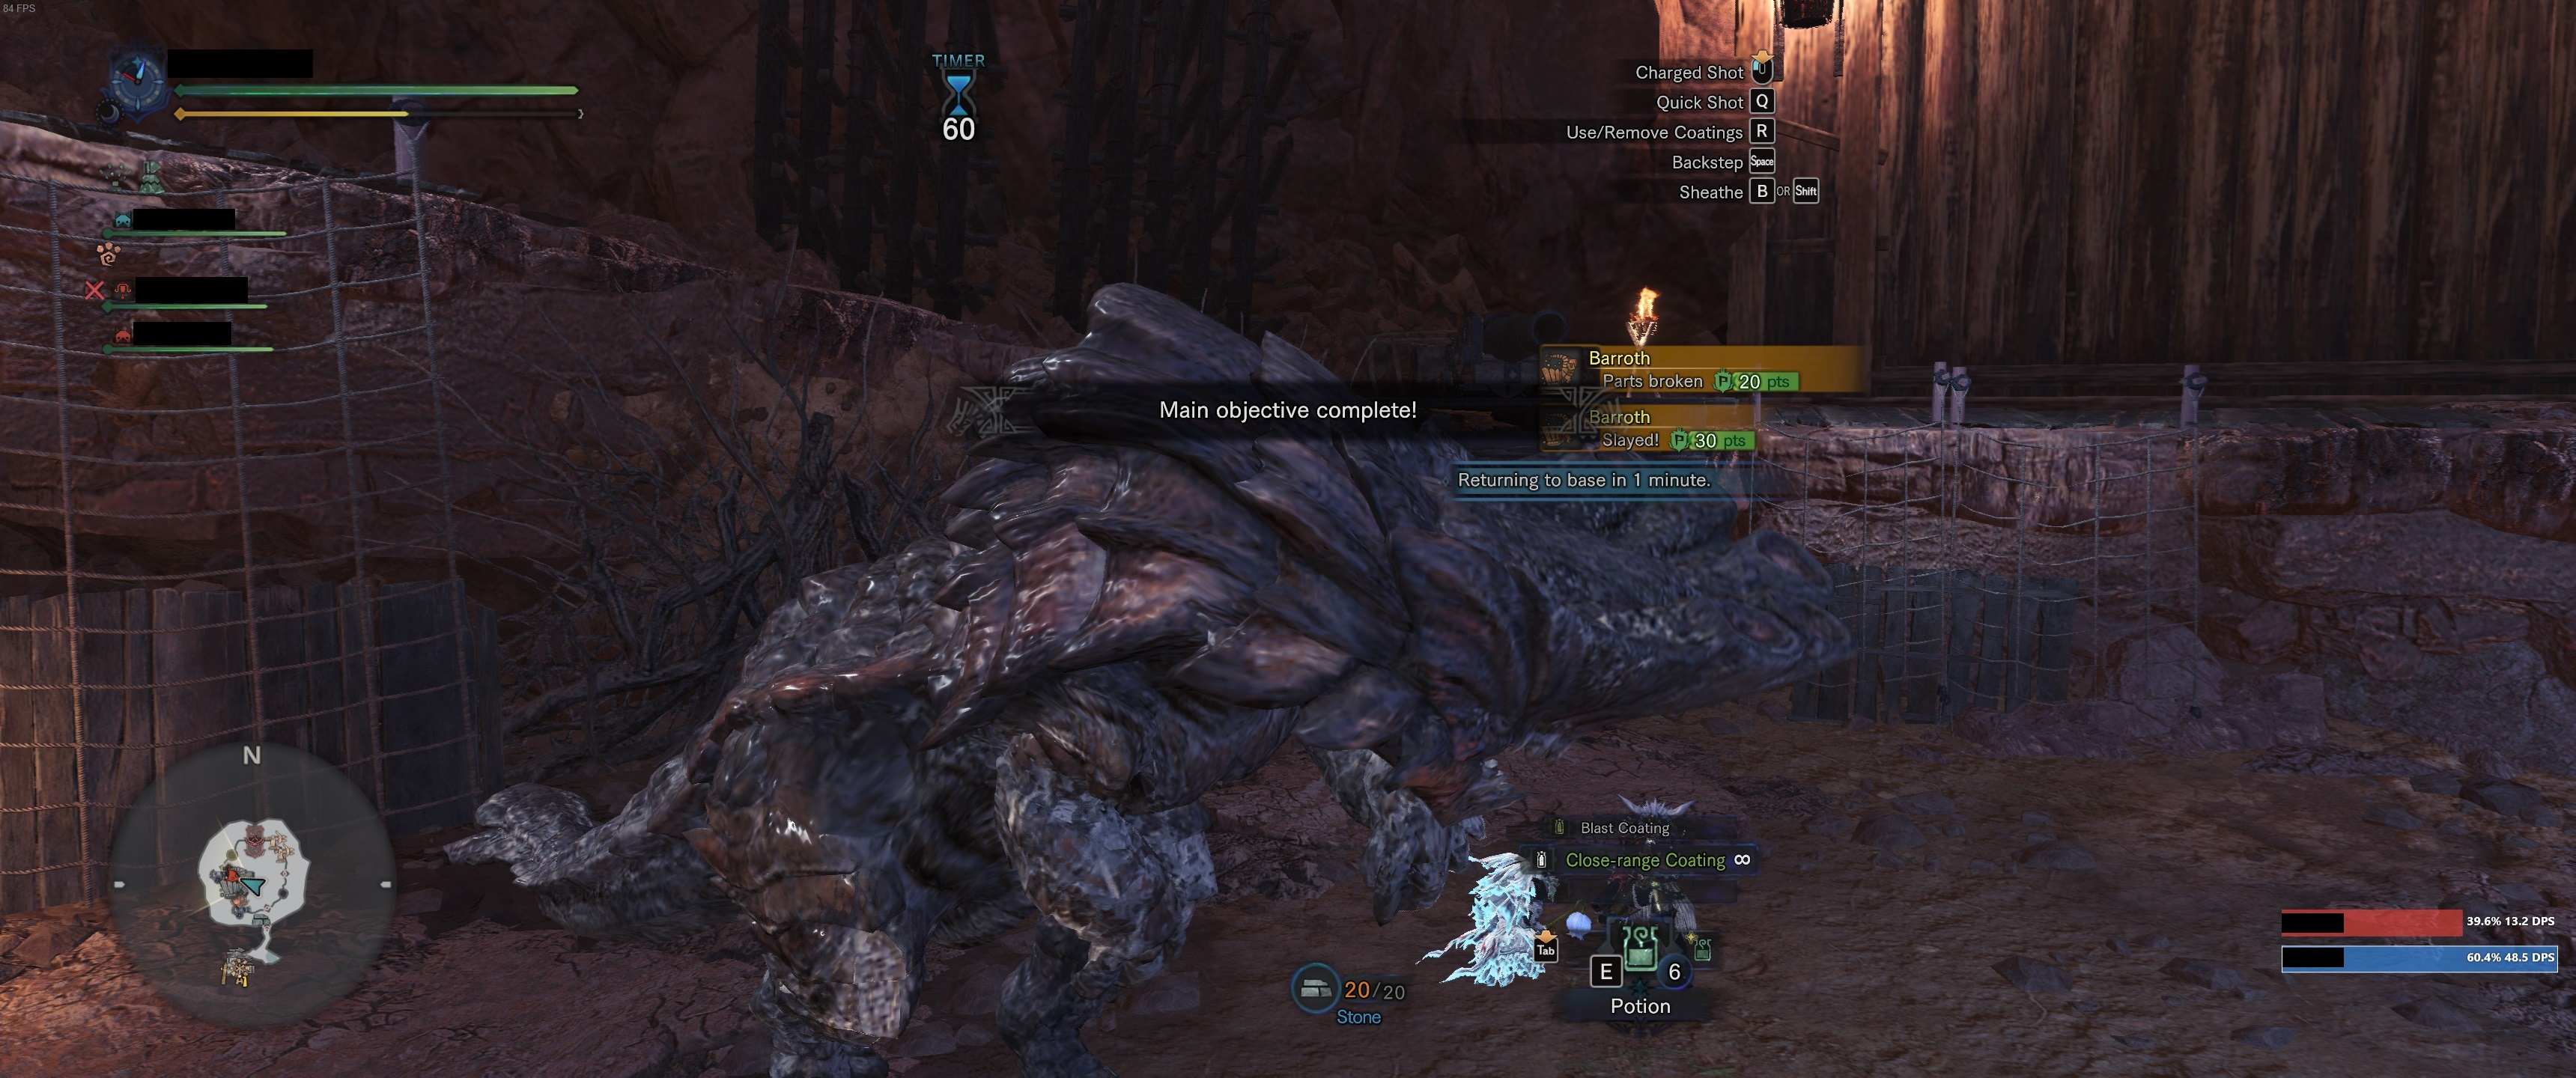 How To Install Mhw Mods